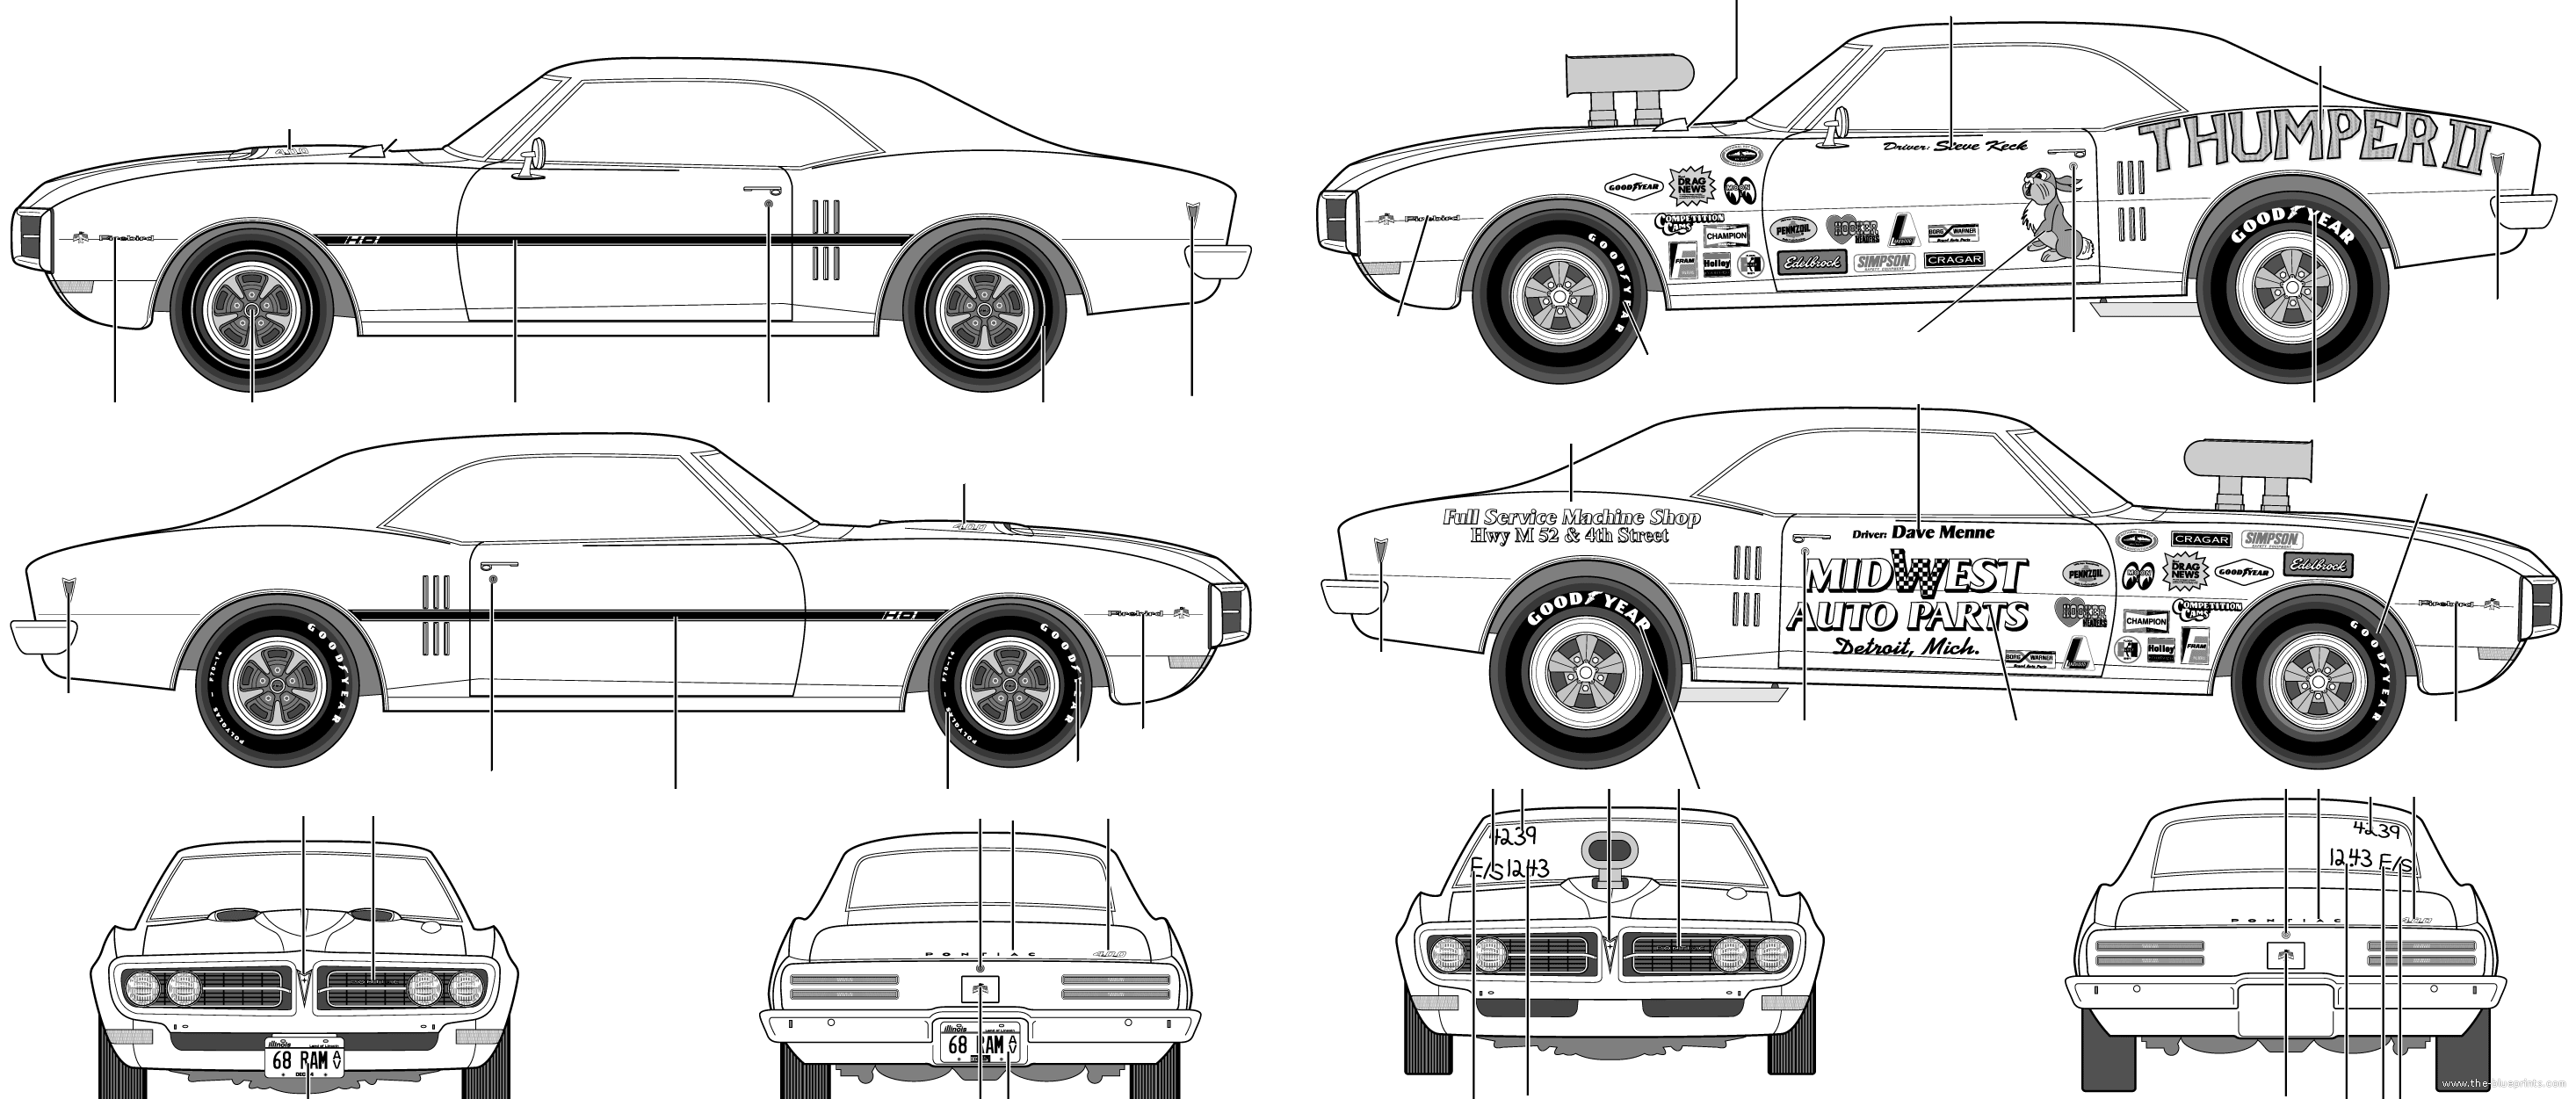 Blueprints > Cars > Pontiac > Pontiac Firebird 400 Ram Air (1968)